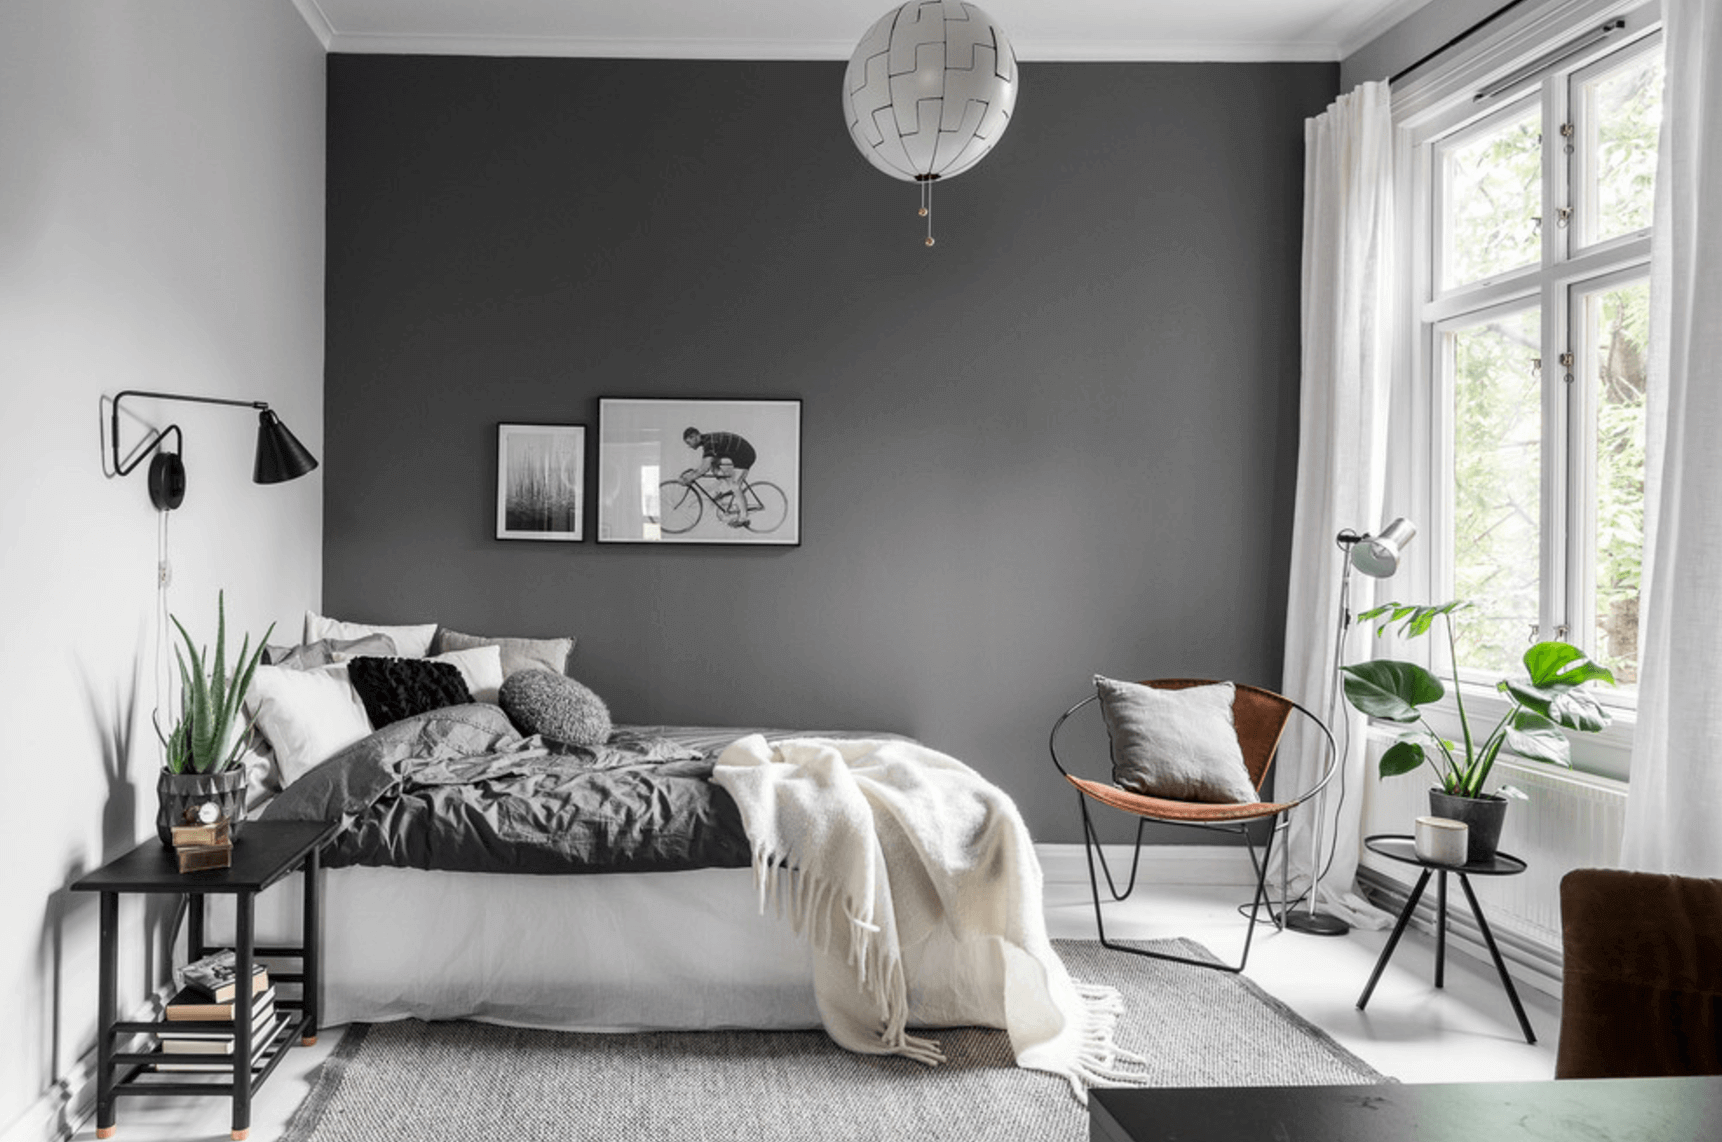 Minimalist Dcor is the Perfect Statement in this Grey Bedroom Ideas